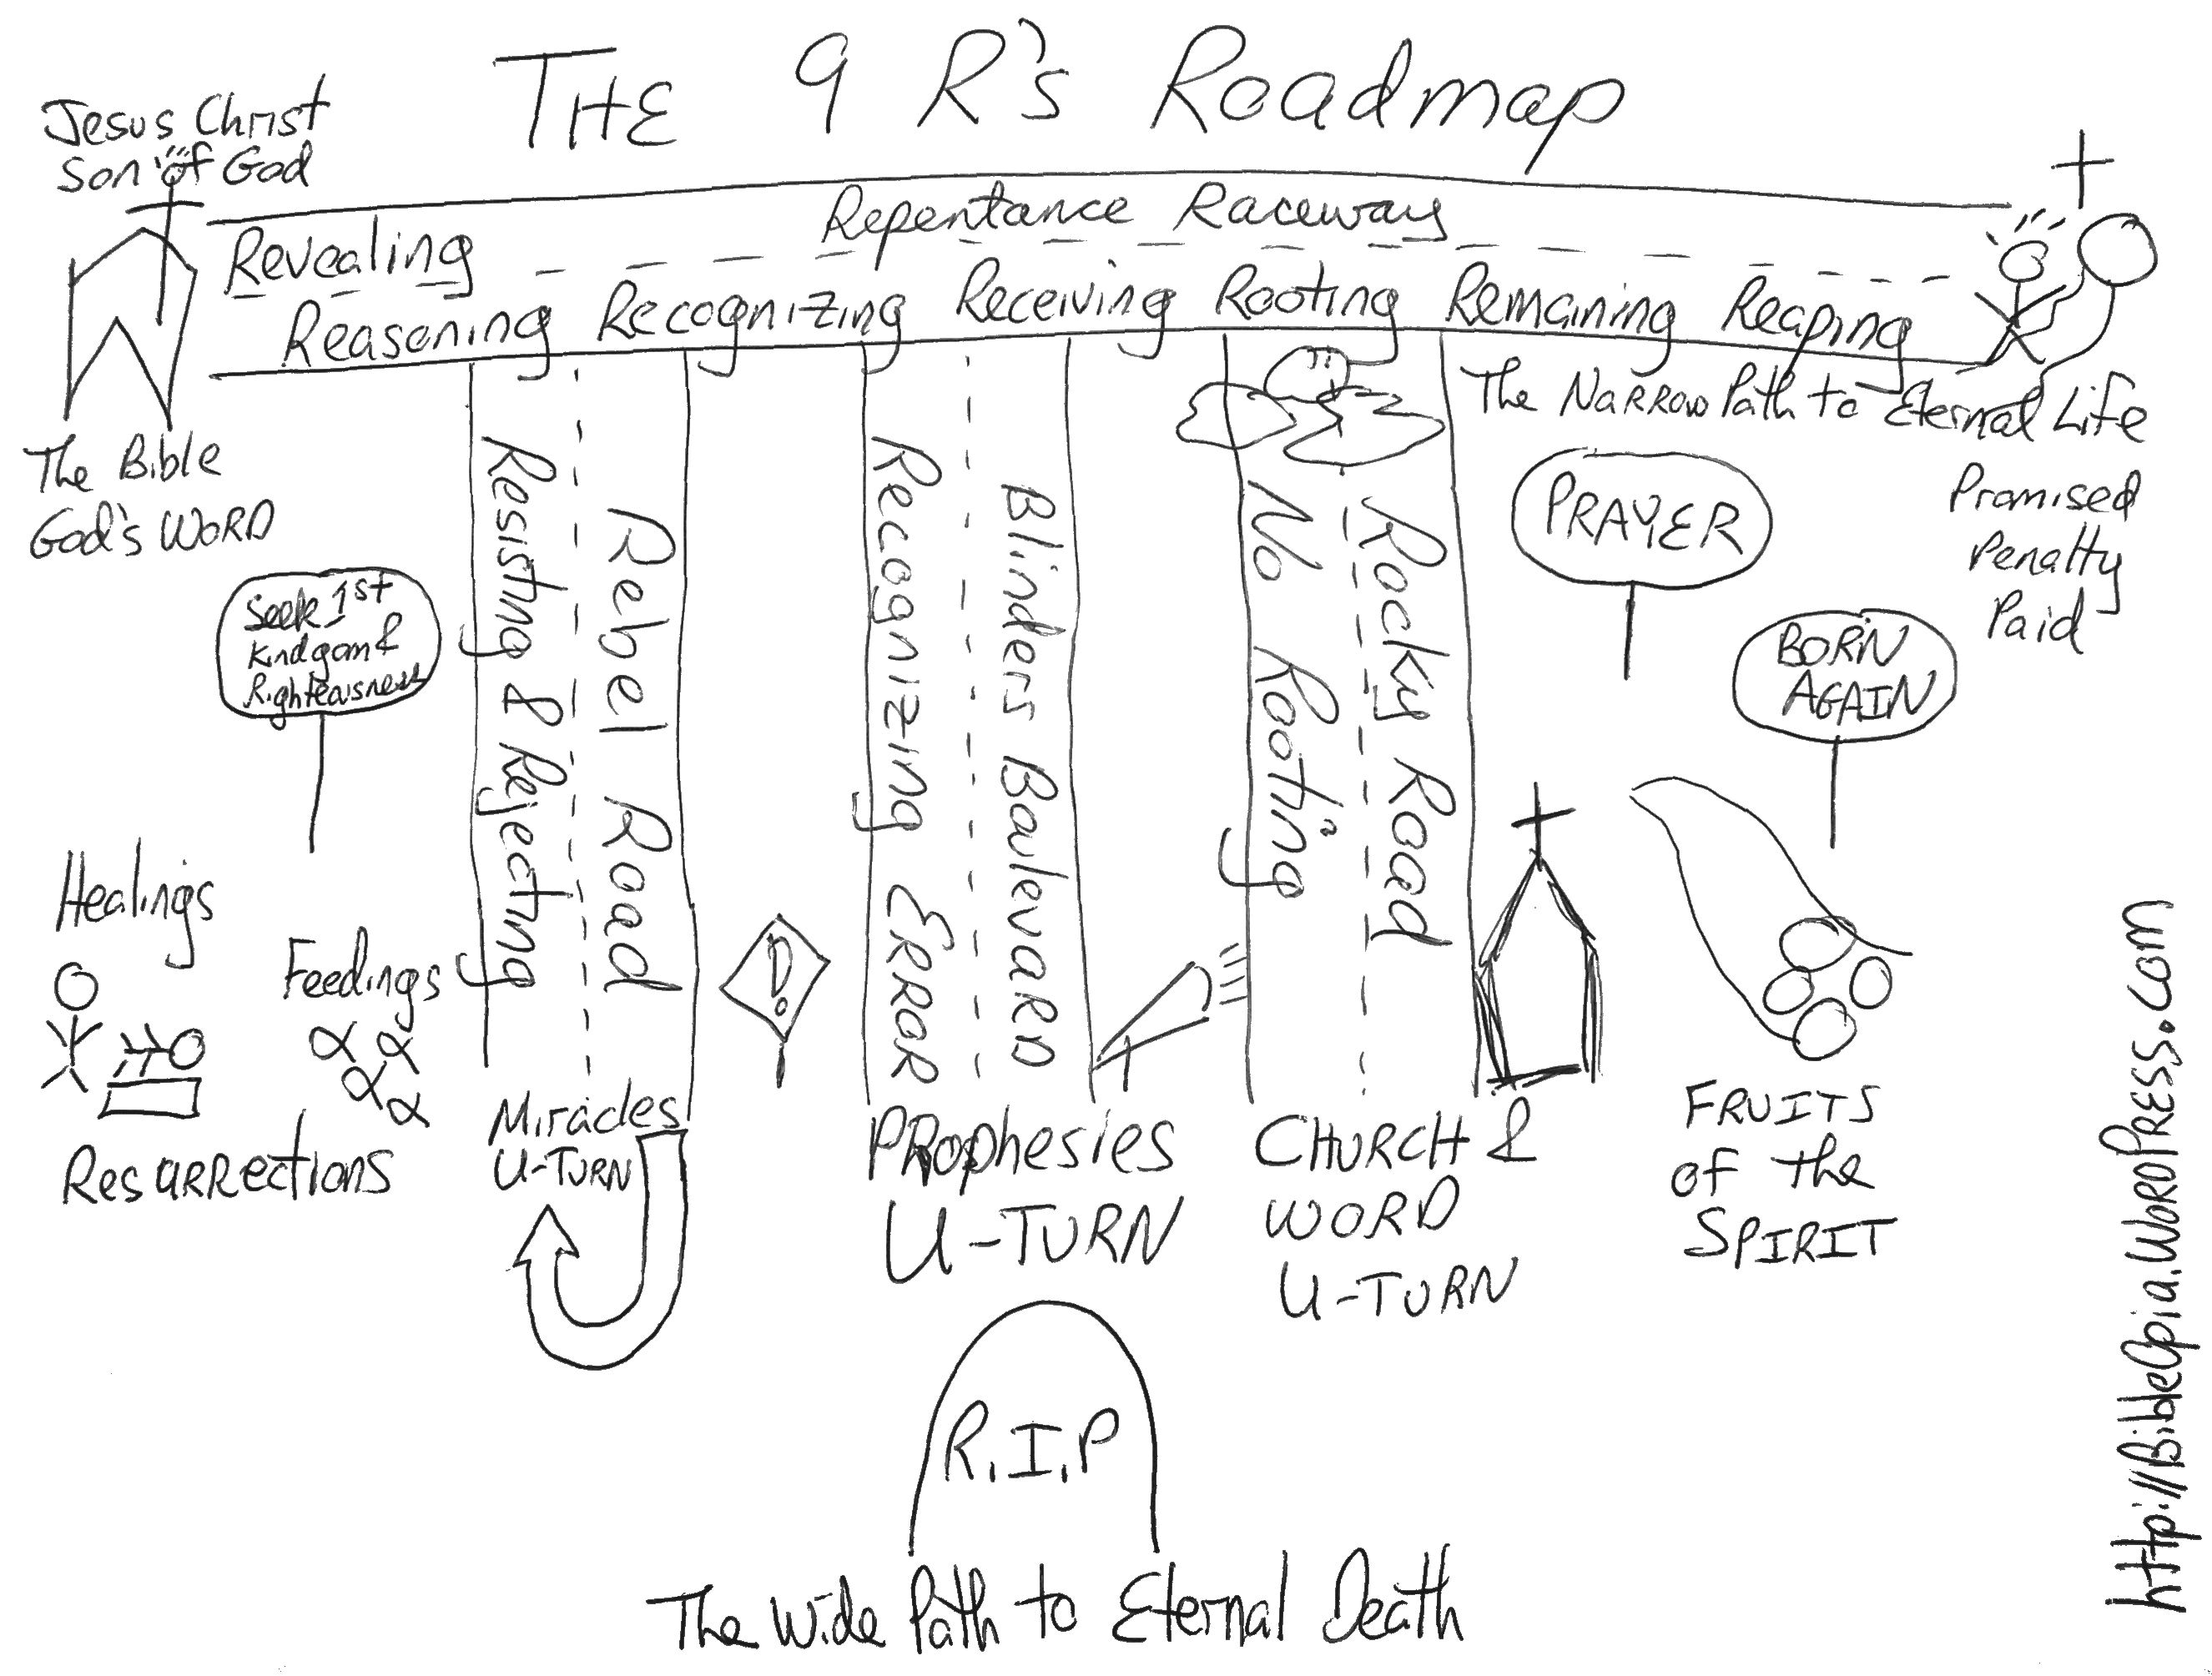 Drawn road road map R's Reapers  Reasoning Rejecting